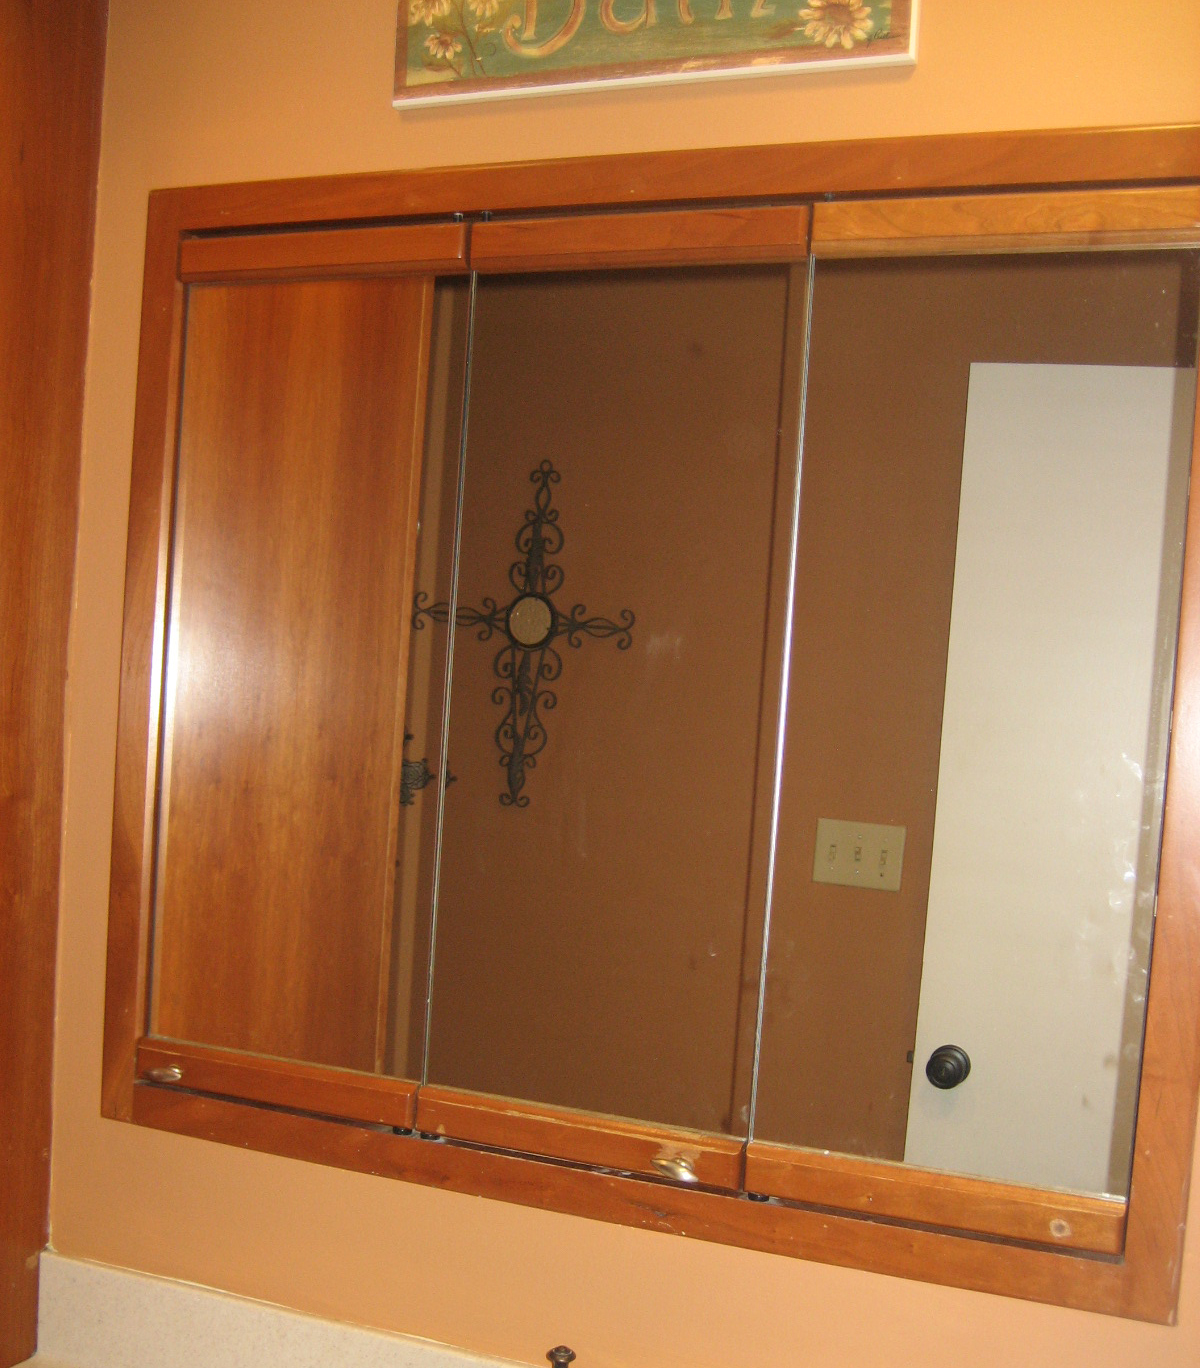 West furniture revival ole 39 time 3 mirror medicine - How to redo bathroom cabinets for cheap ...